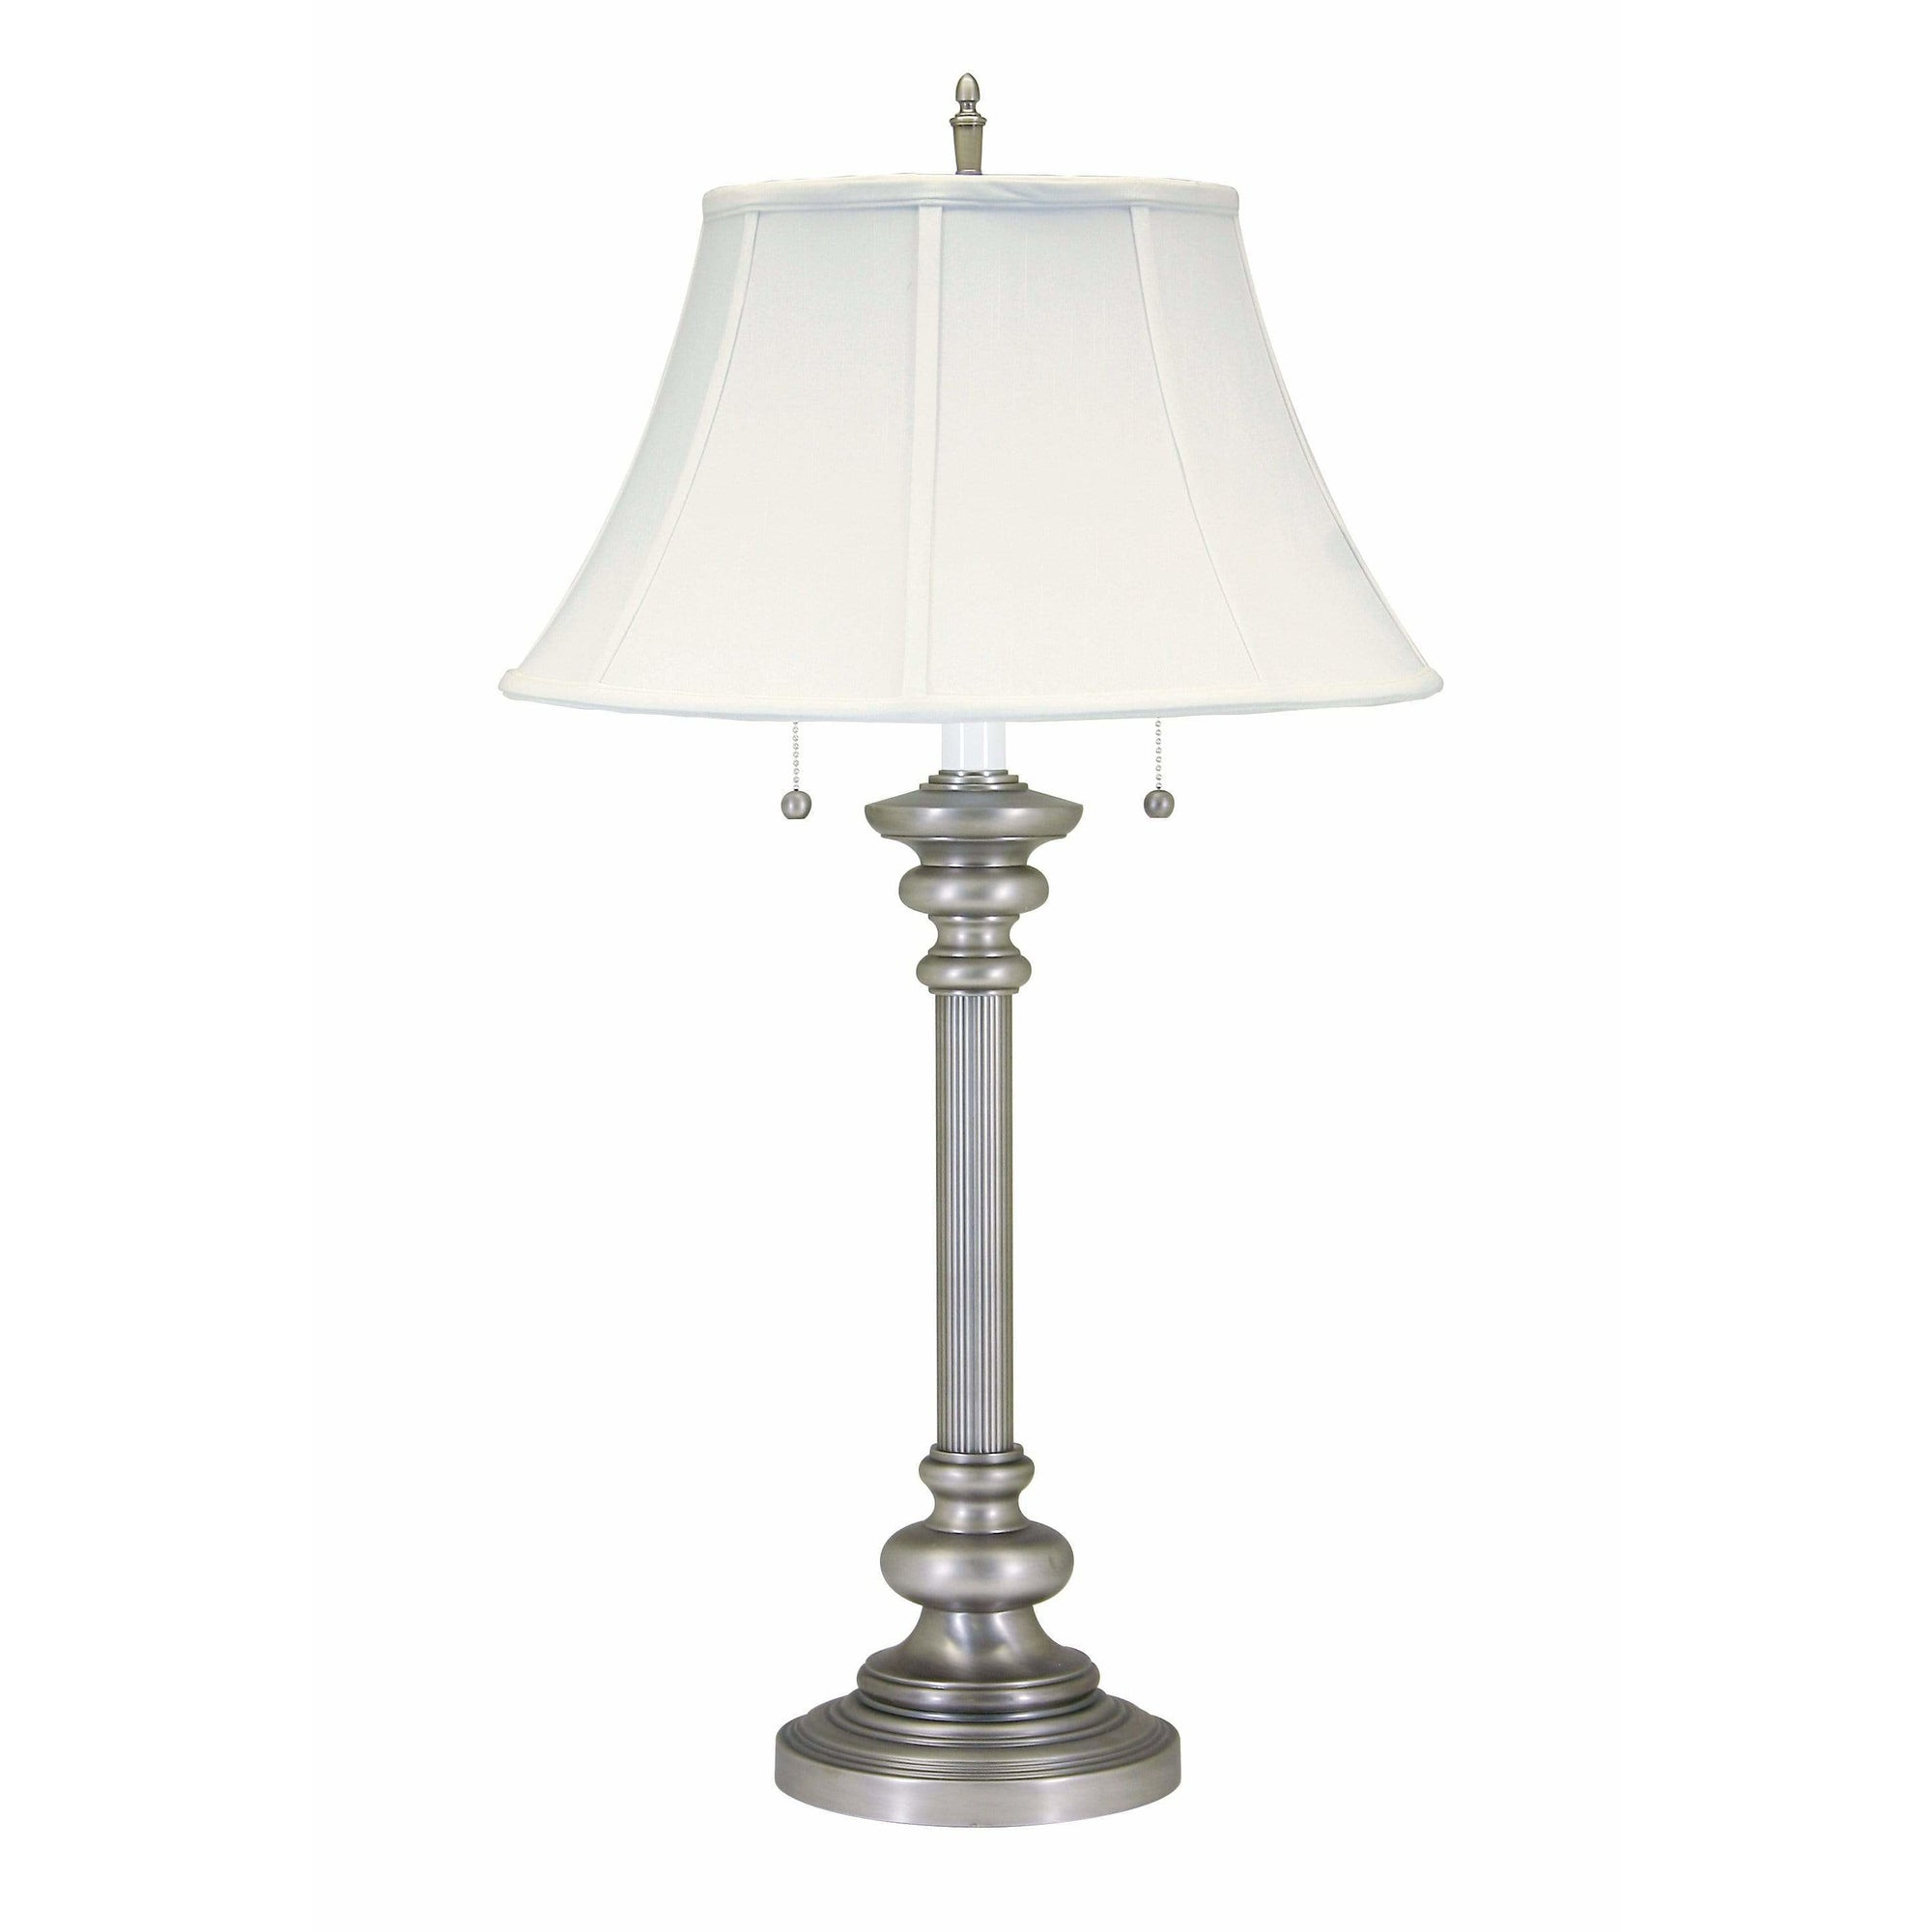 House Of Troy Table Lamps Newport Twin Pull Table Lamp by House Of Troy N651-PTR